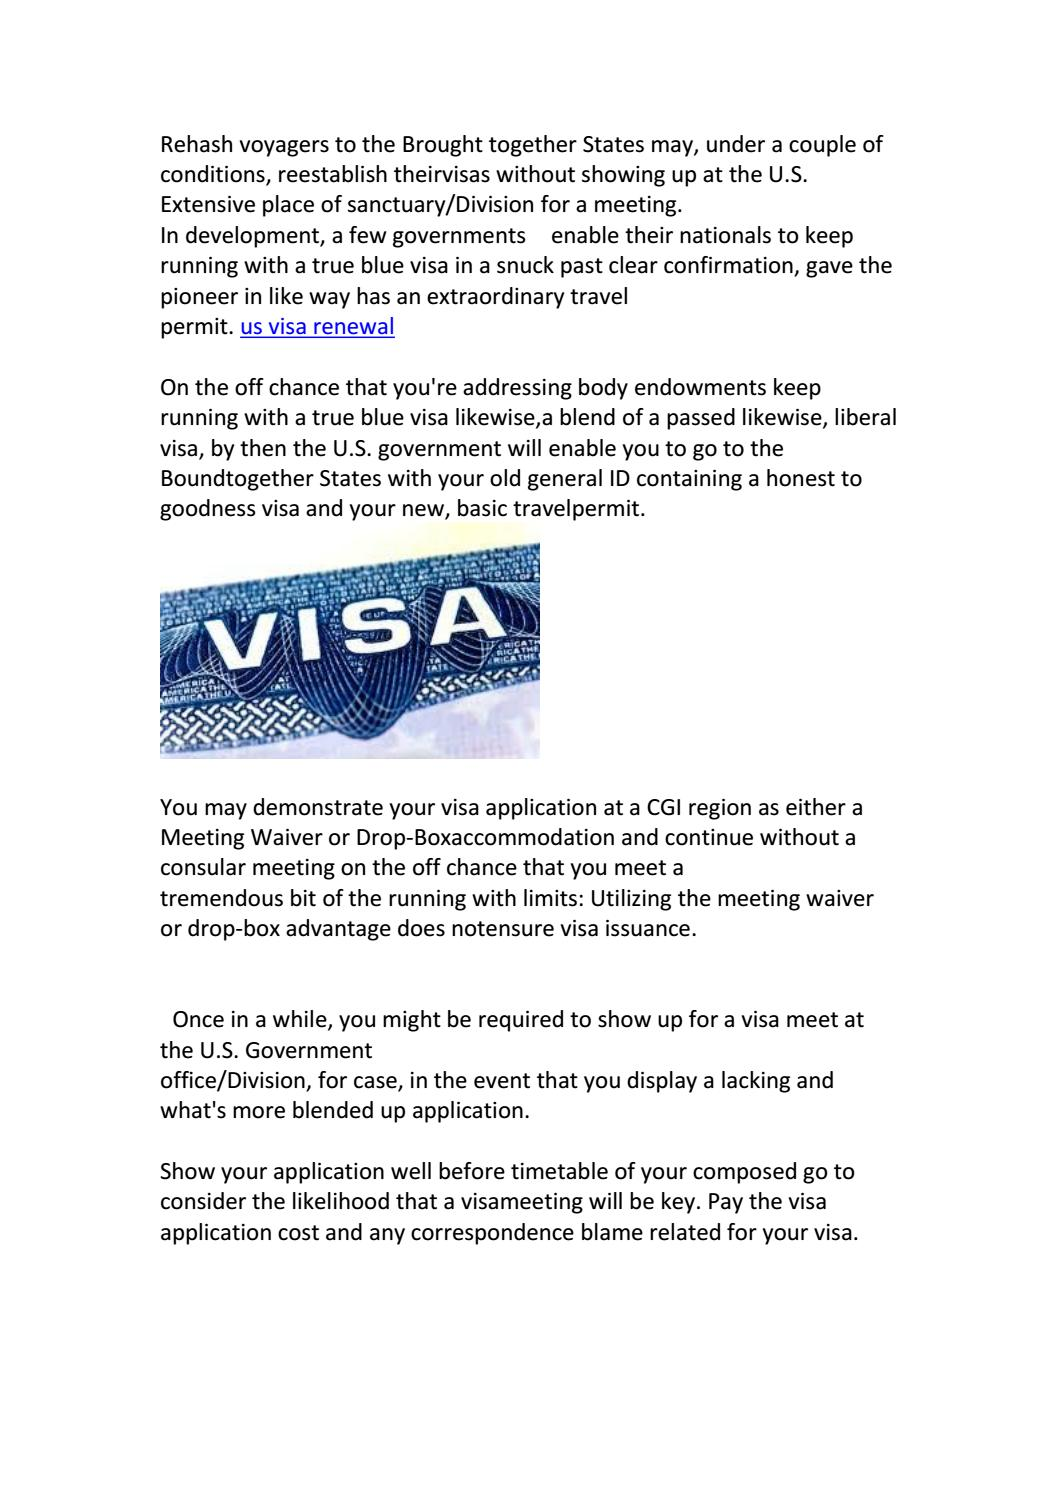 us visa renewal by mahesh rashi - issuu